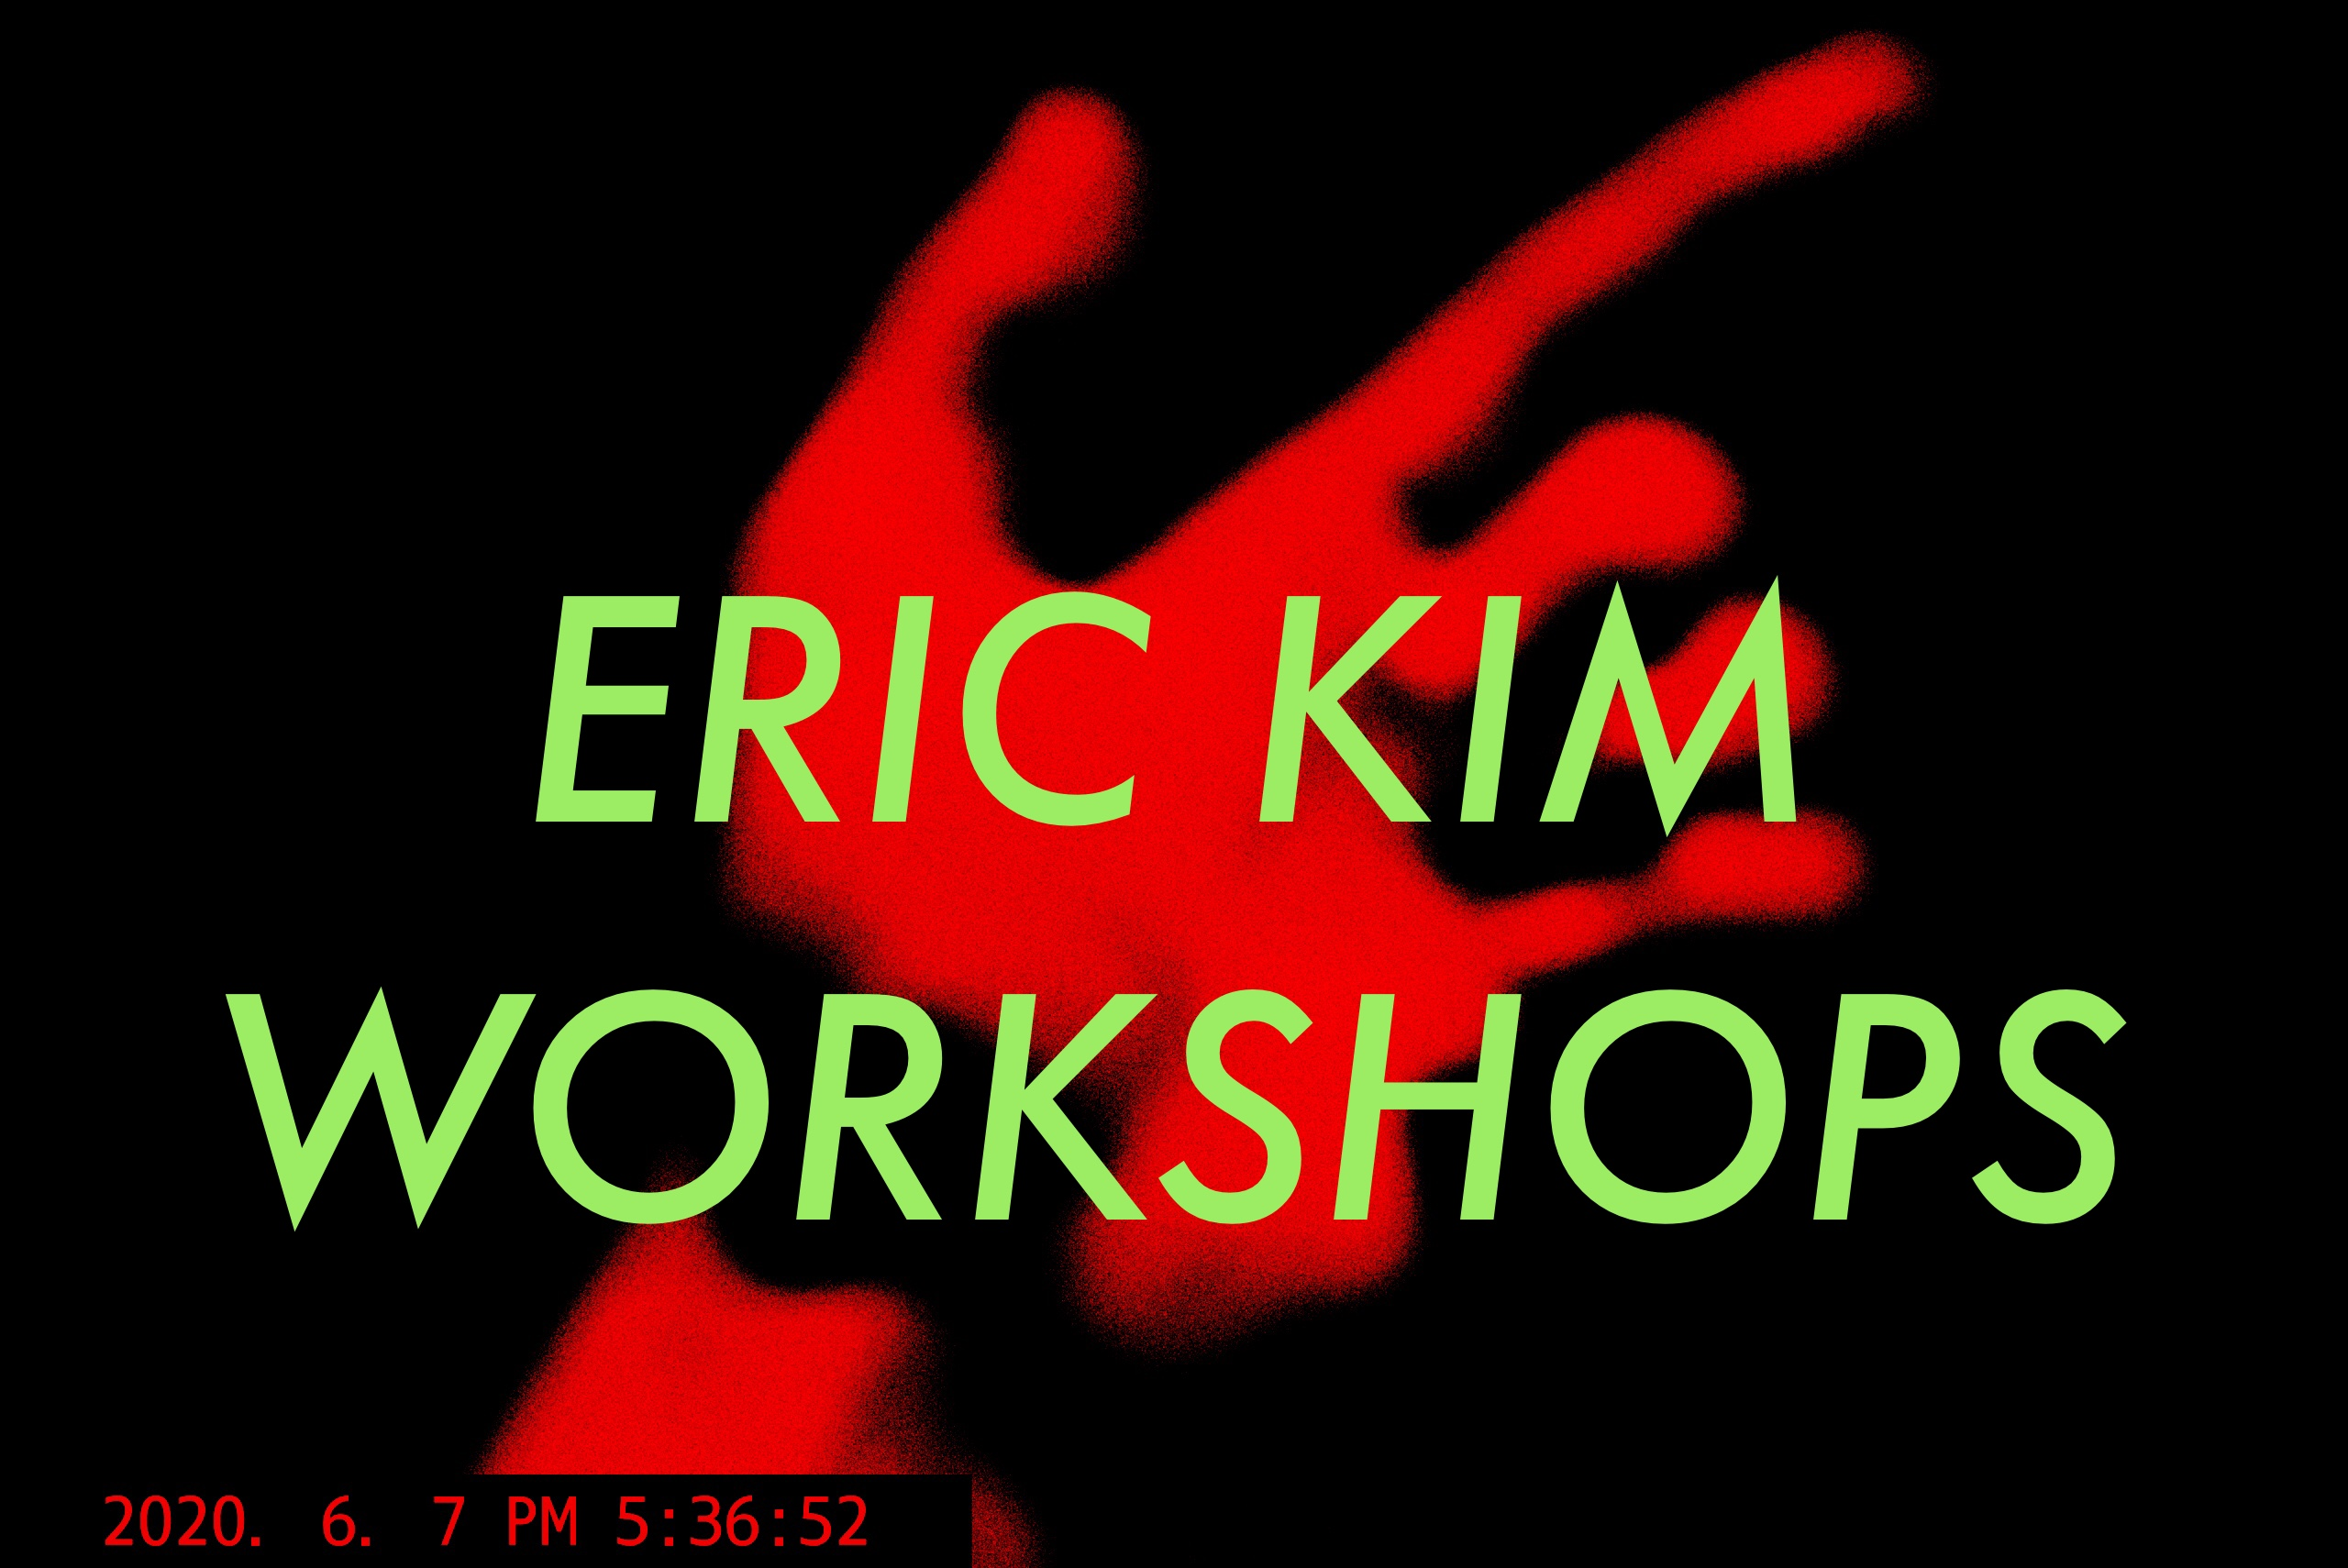 ERIC KIM workshops red hand